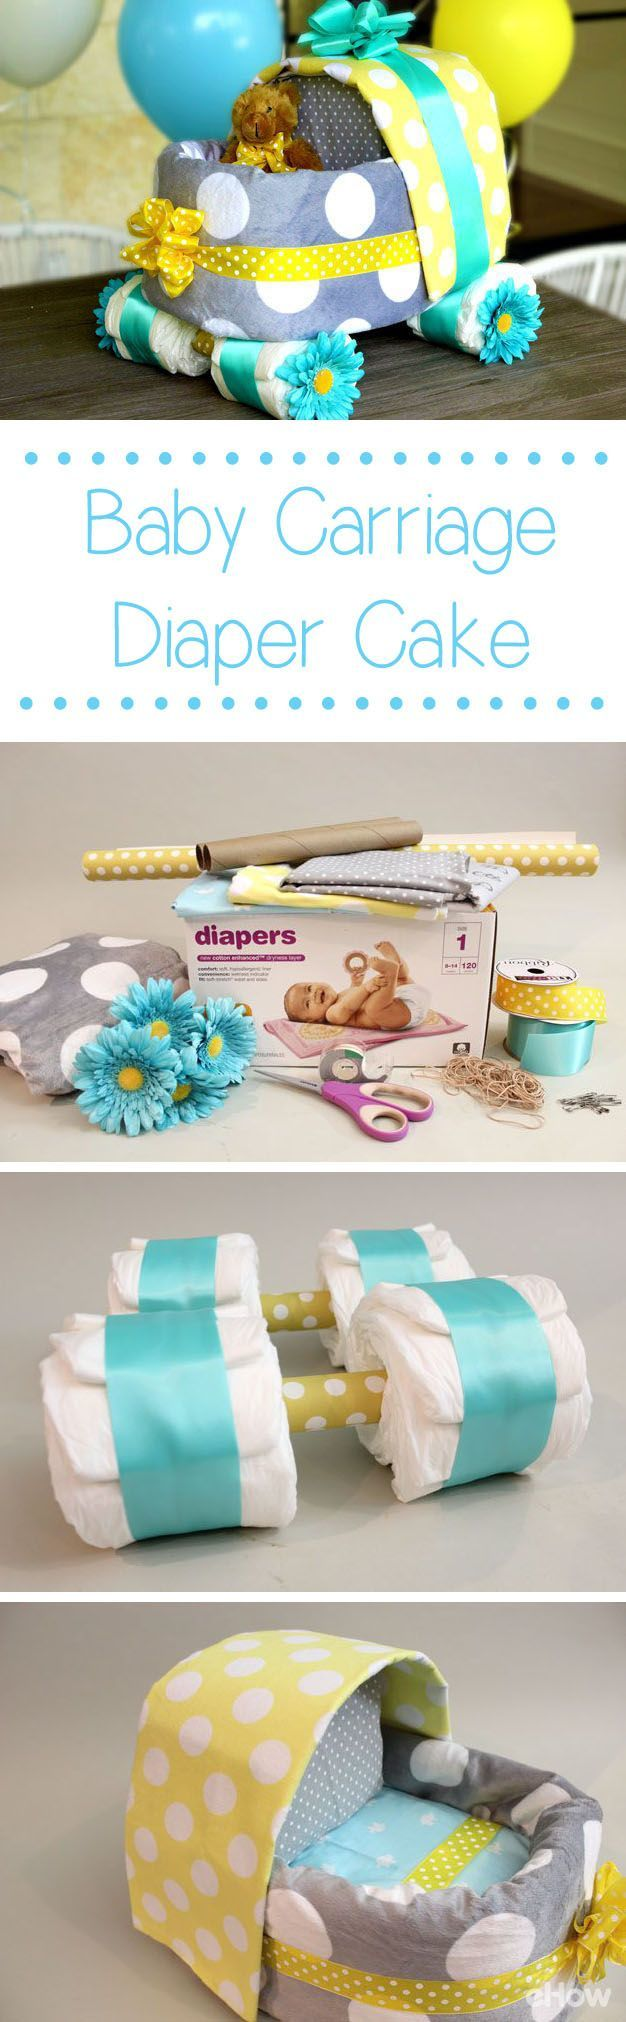 How to Make a Baby Carriage Diaper Cake                                                                                                                                                                                 More